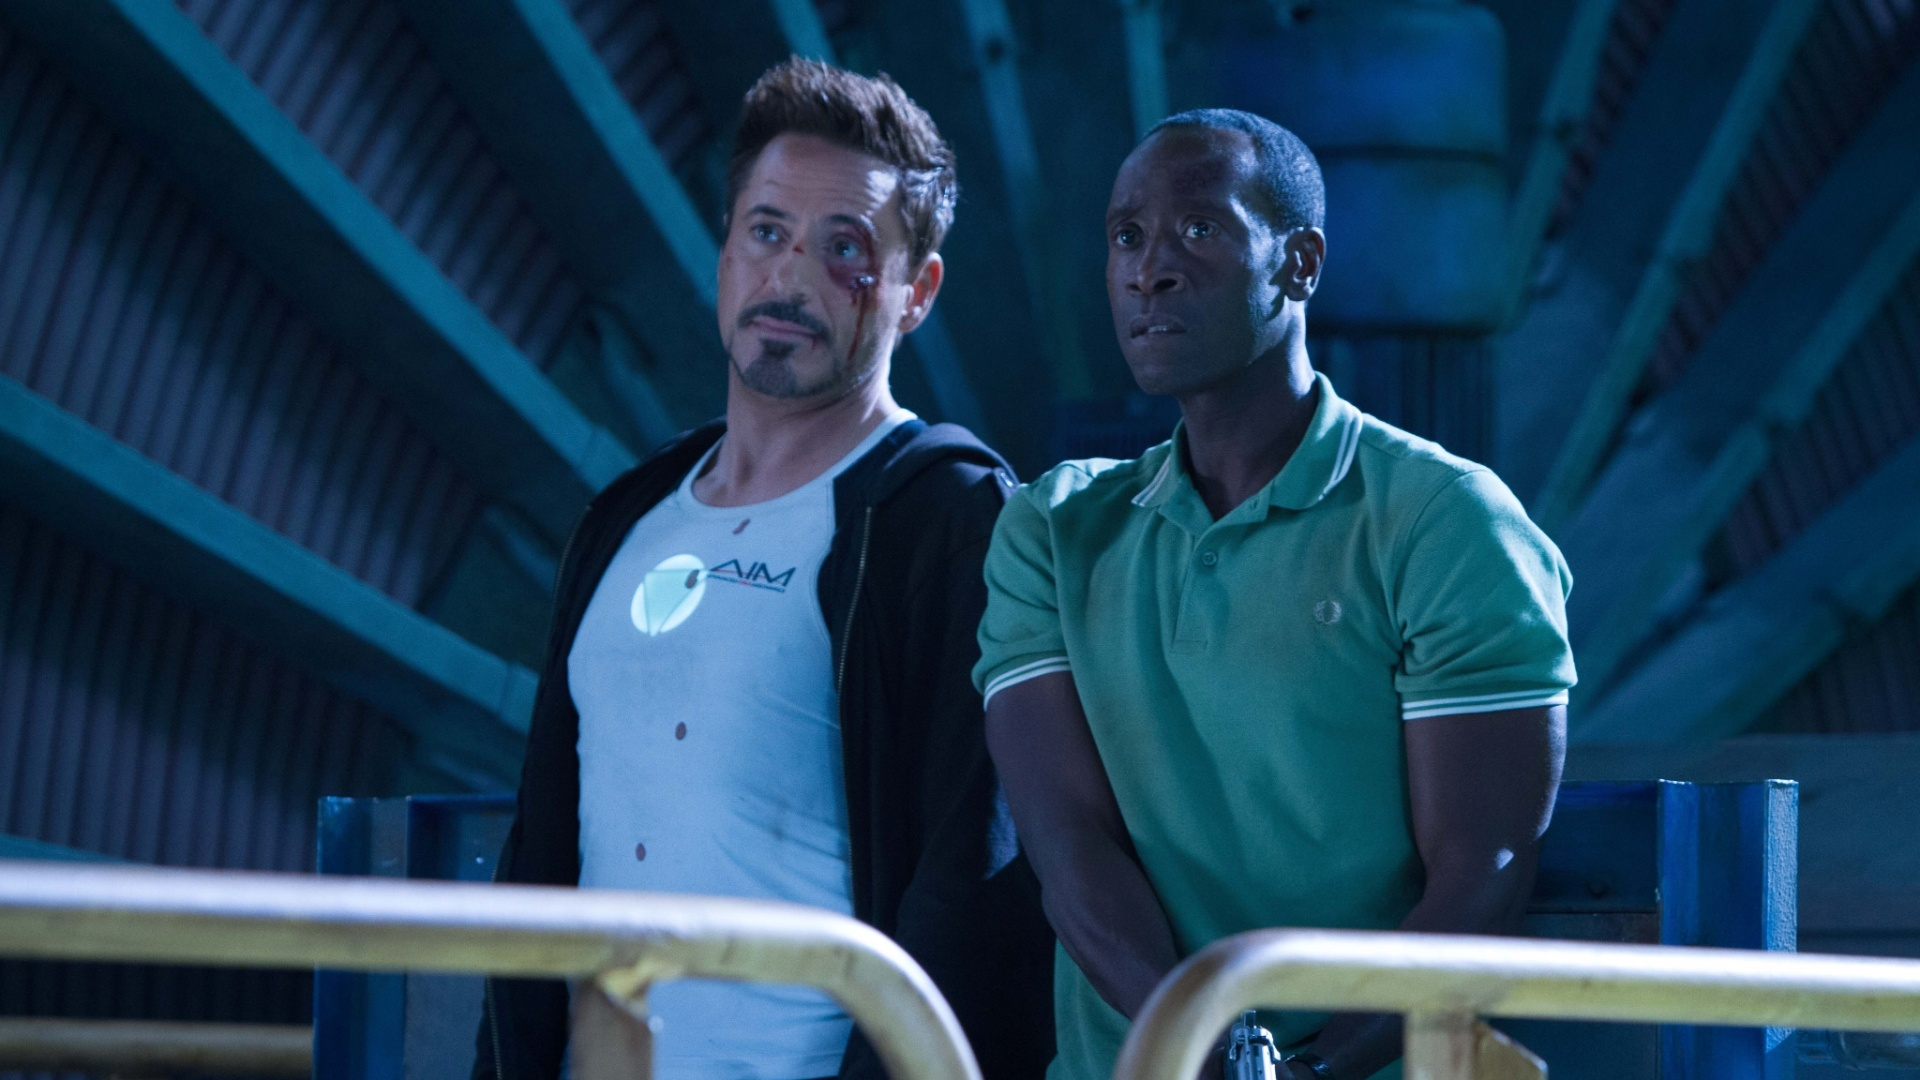 Robert Downey Jr. e Don Cheadle em cena do filme